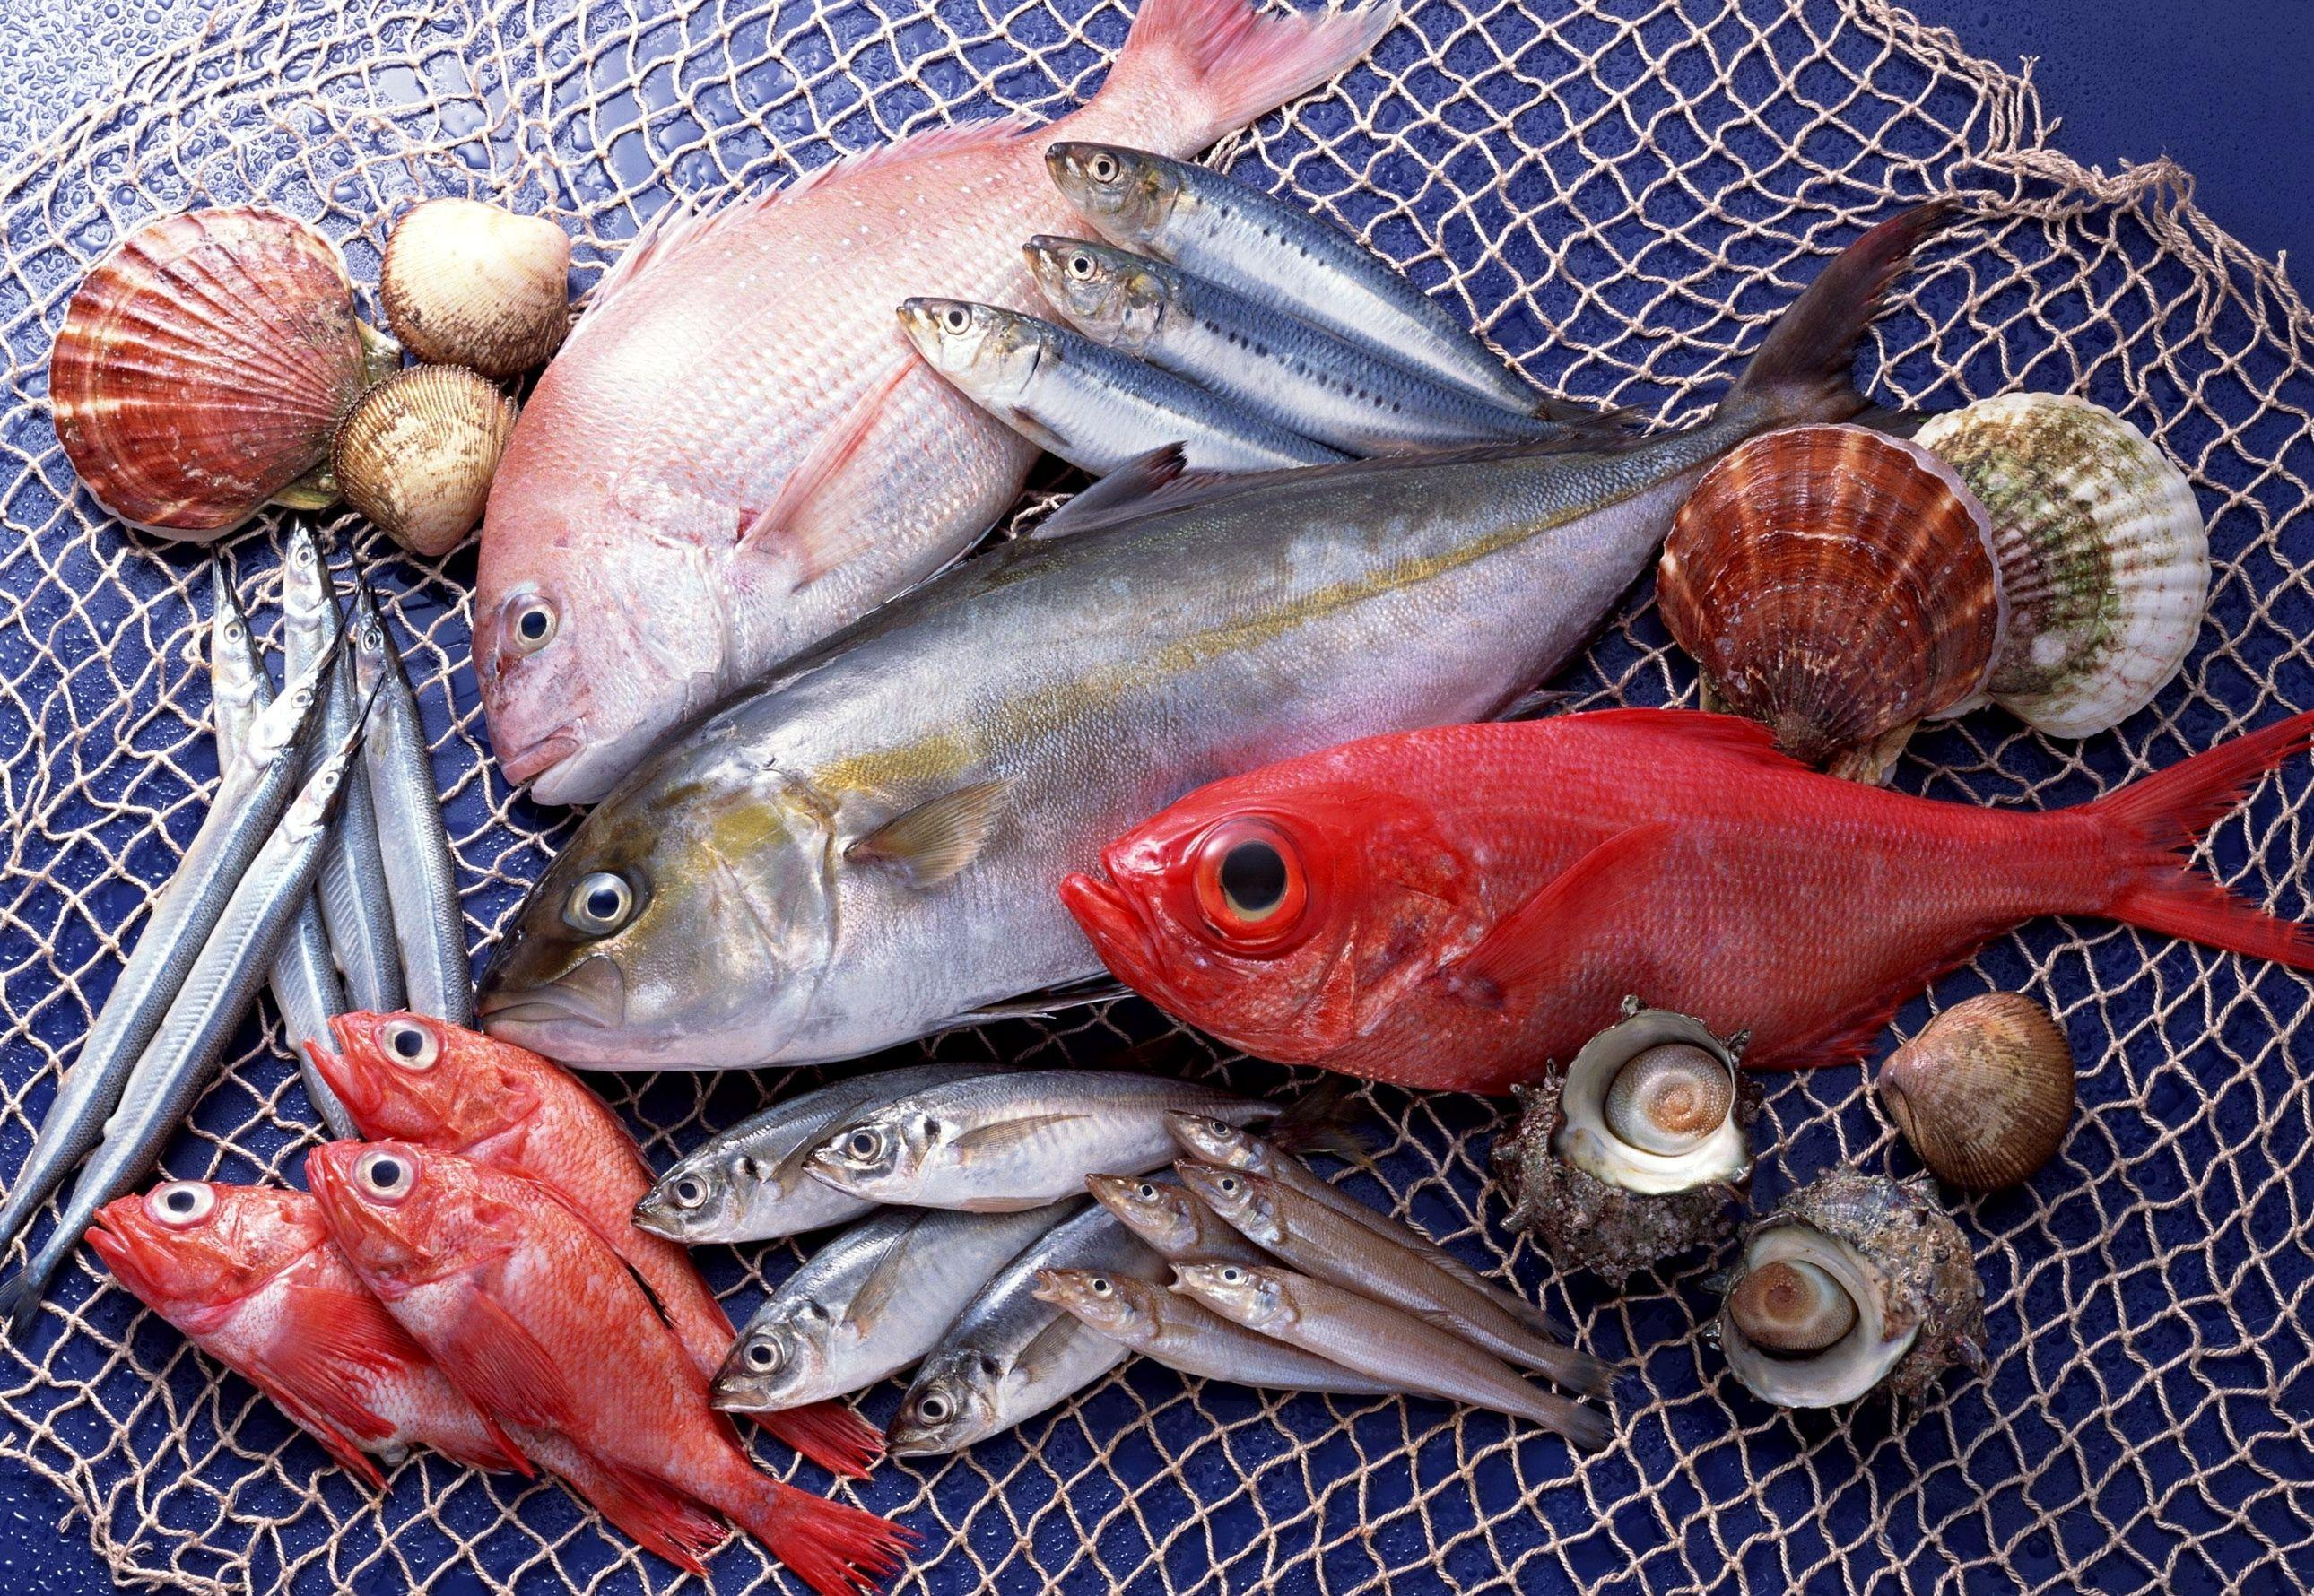 Download Wallpaper Fish, Seafood, variety HD Background